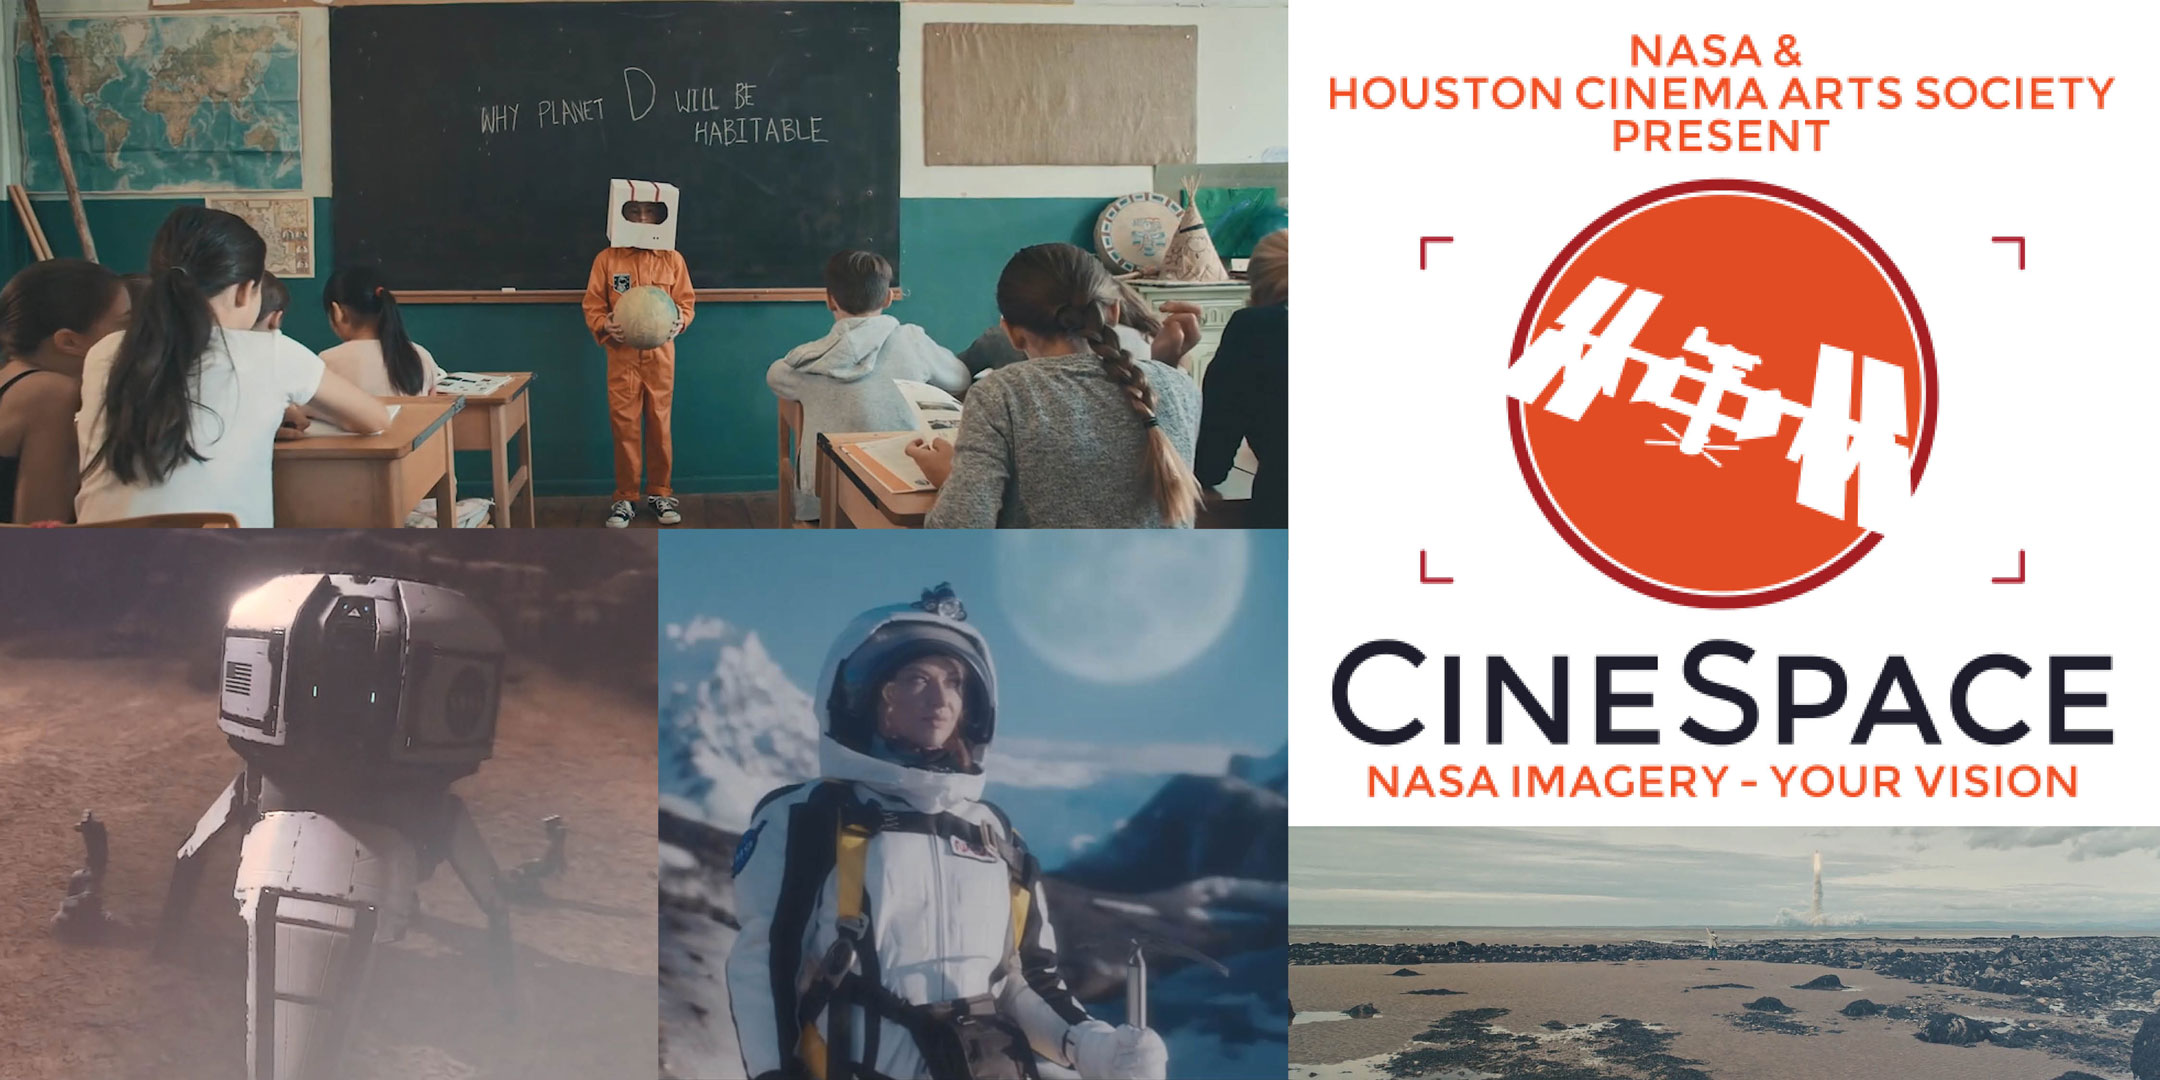 Bayou Theater to show 2019 CineSpace award-winning films inspired by NASA